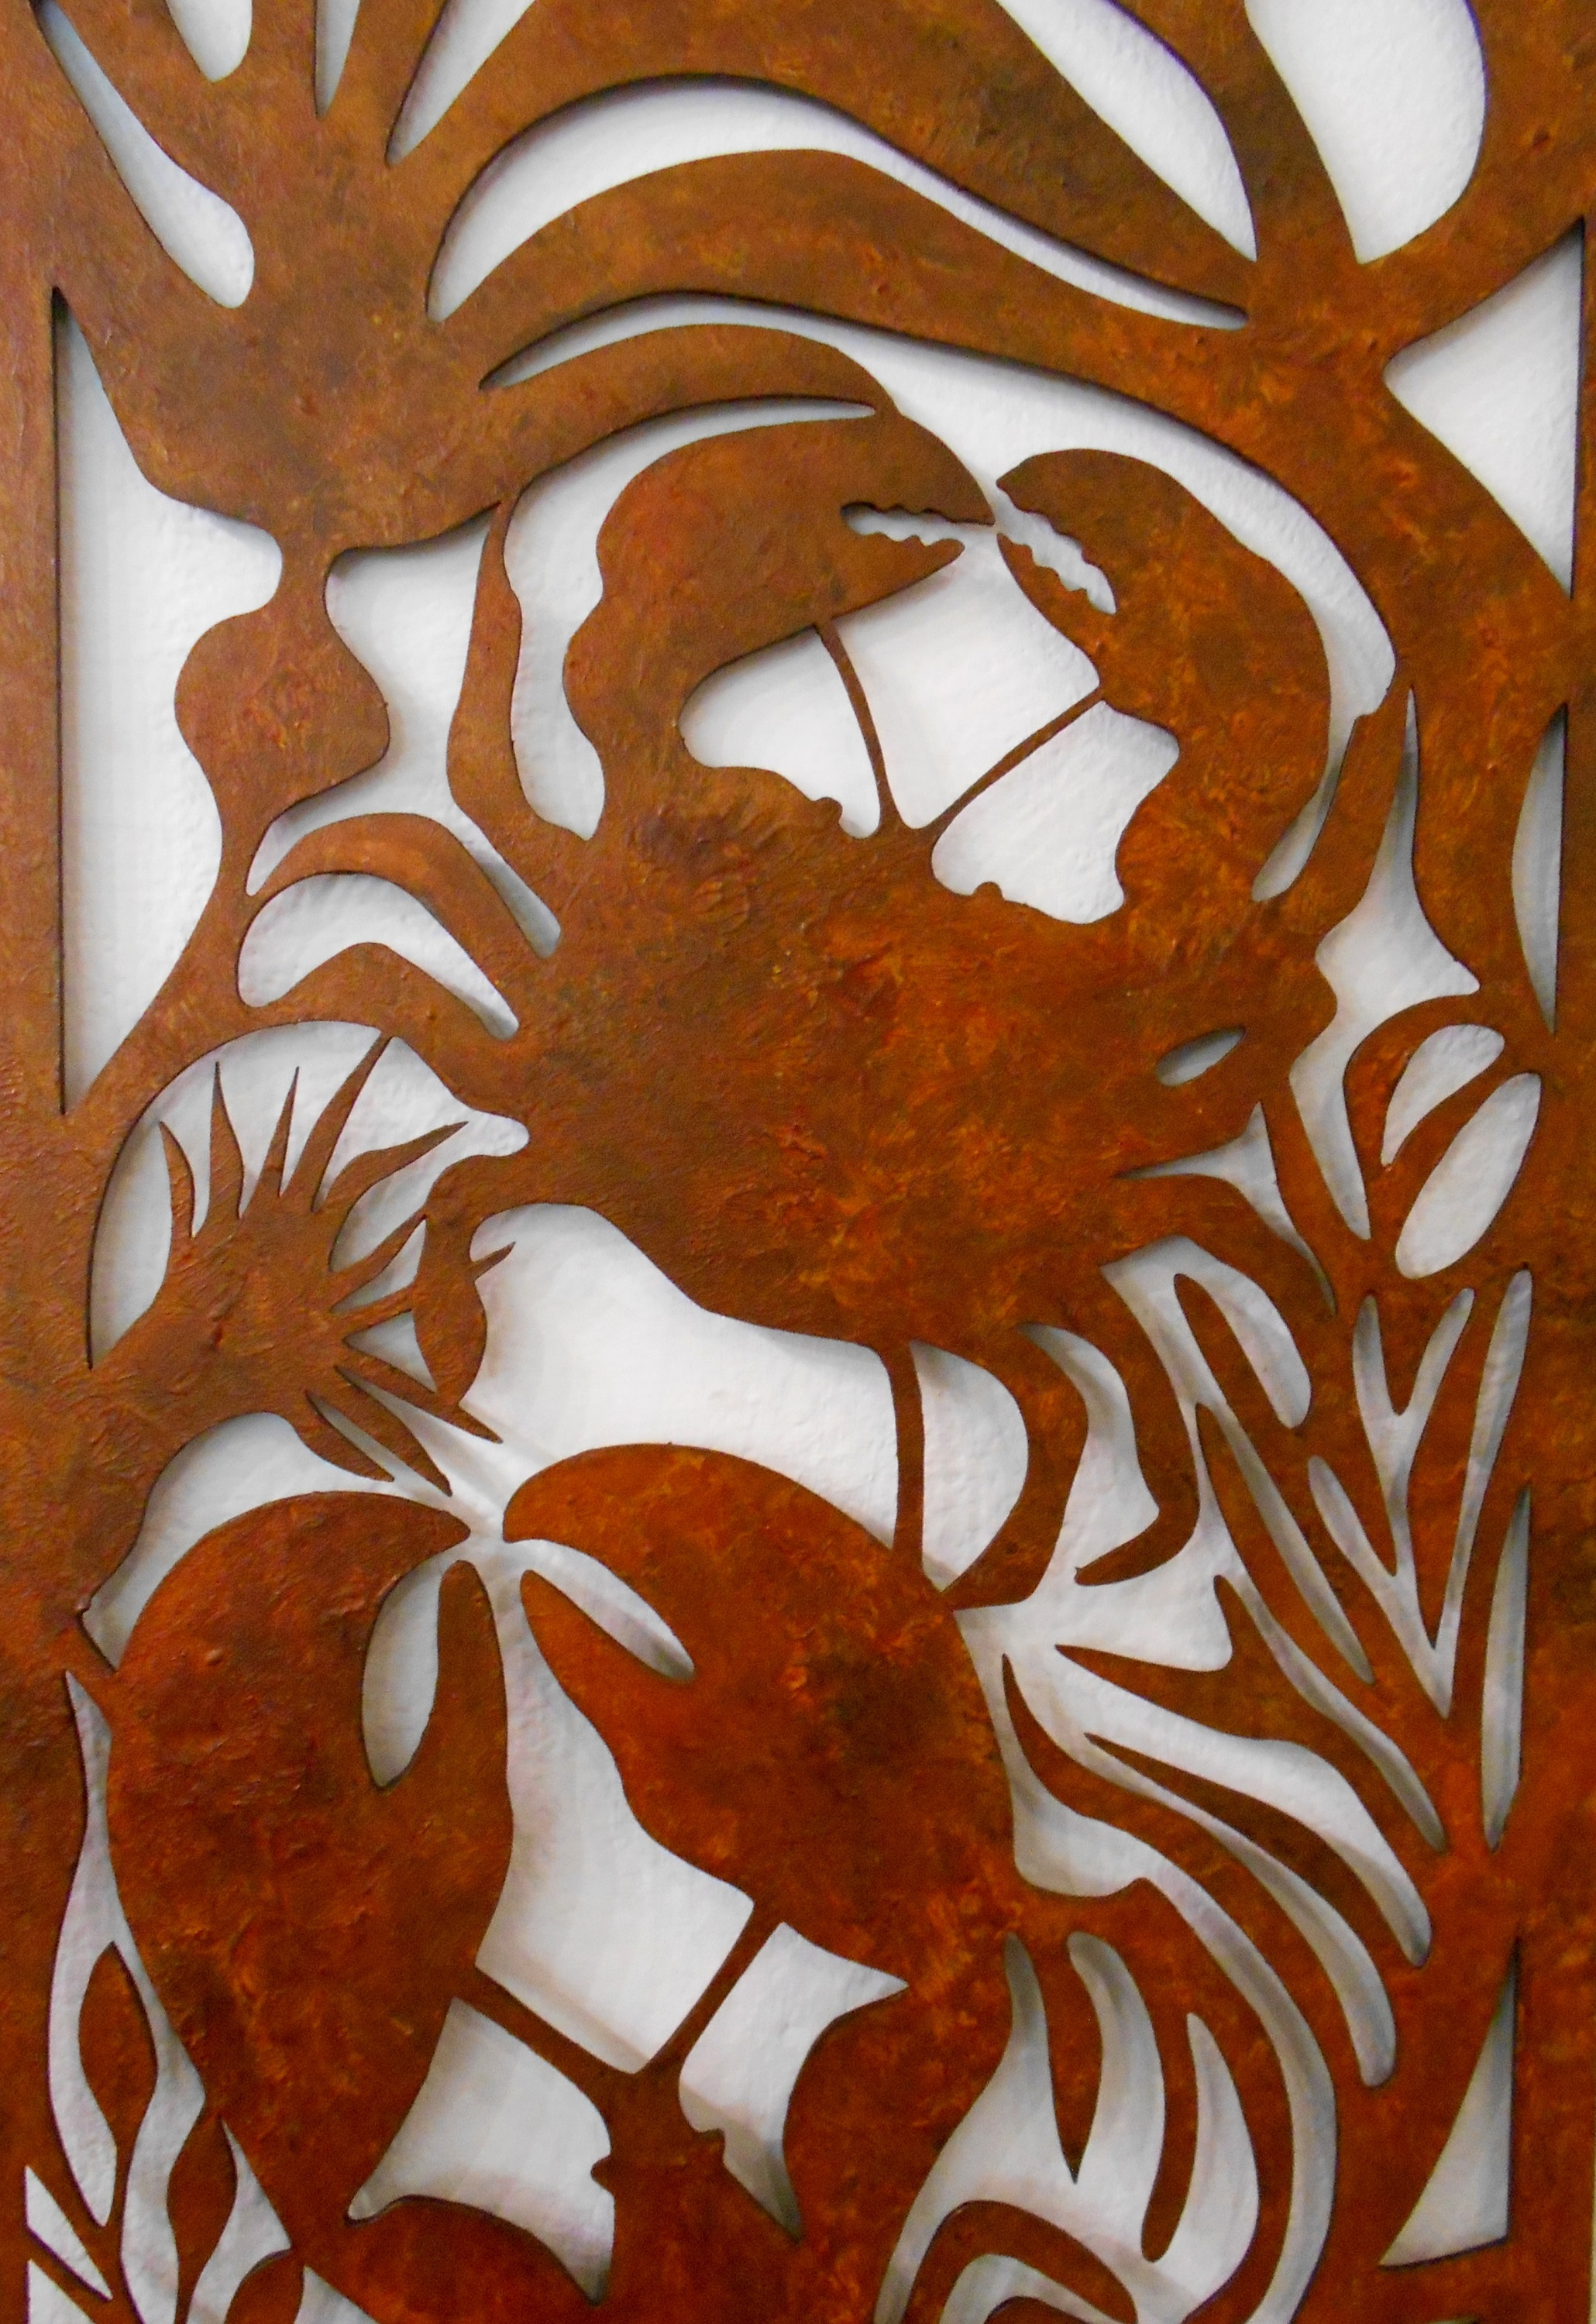 Crab and Lobster Panel Detail